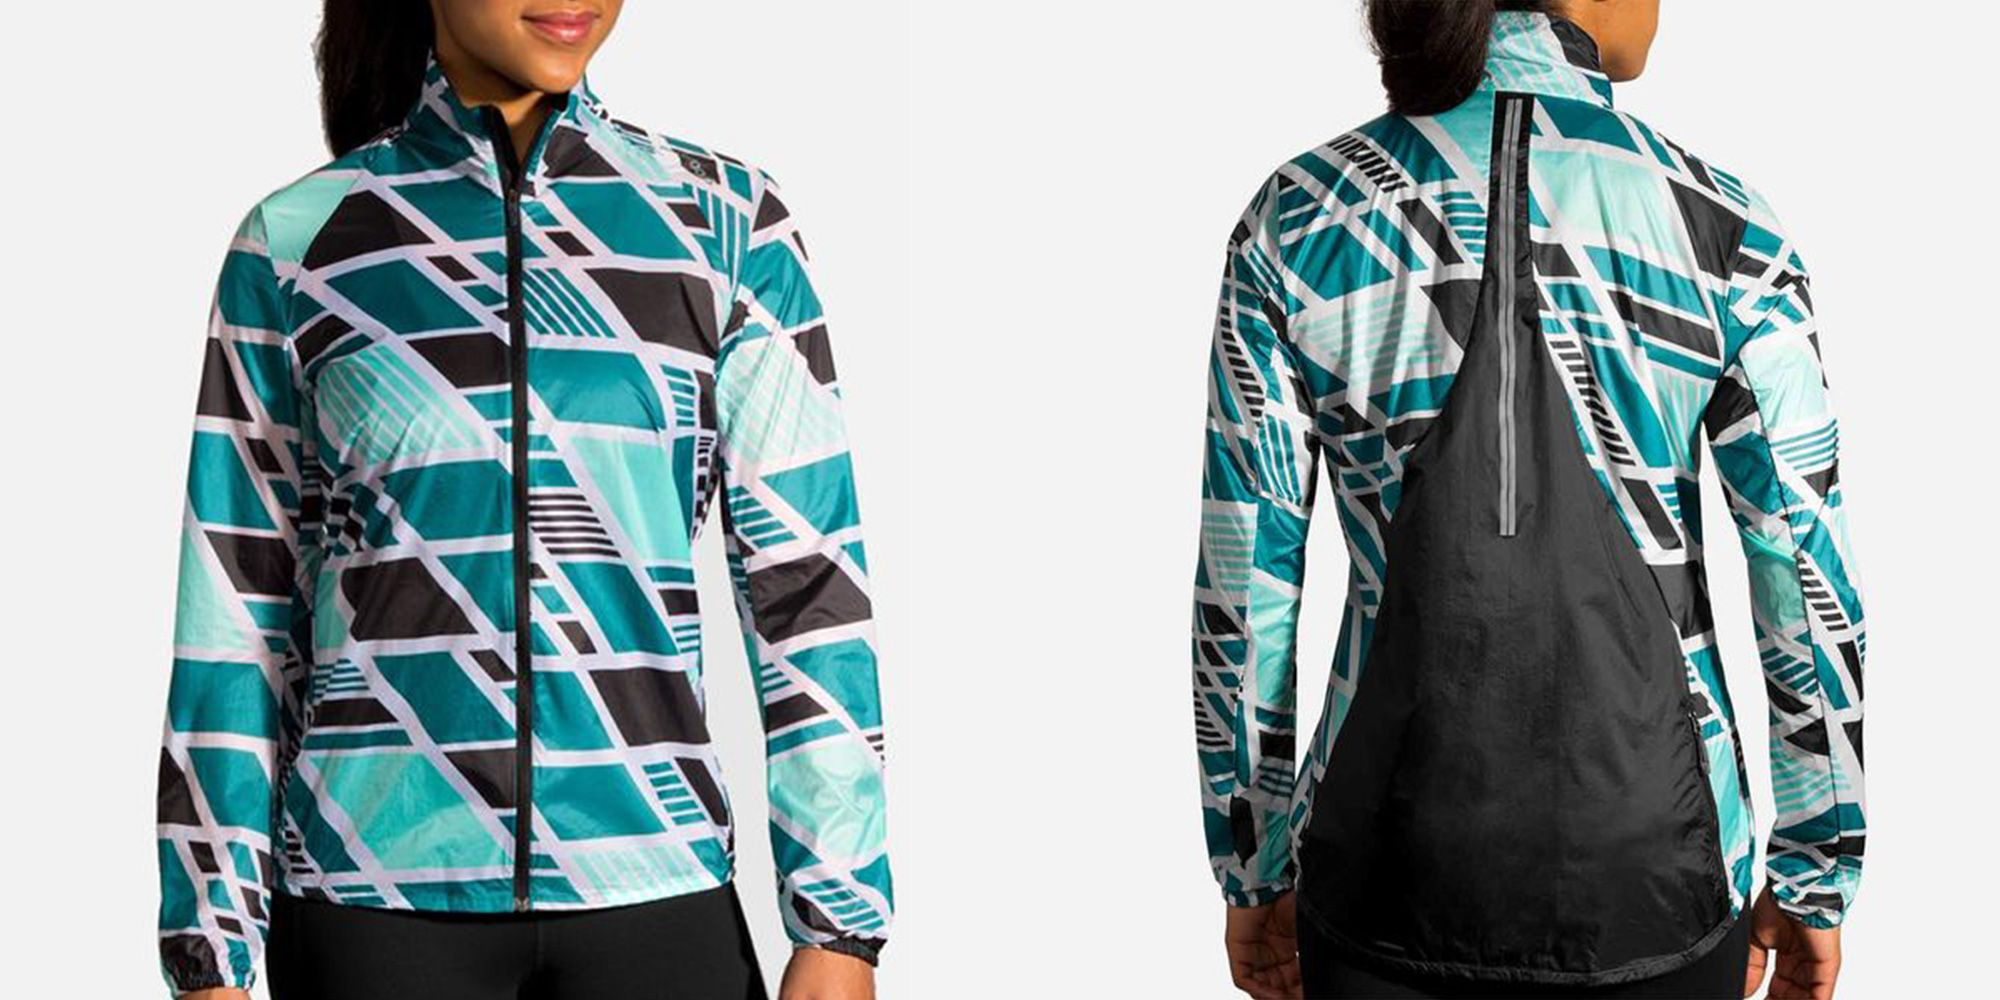 The 8 Best Running Jackets That Won't Turn You Into A Sweaty Mess